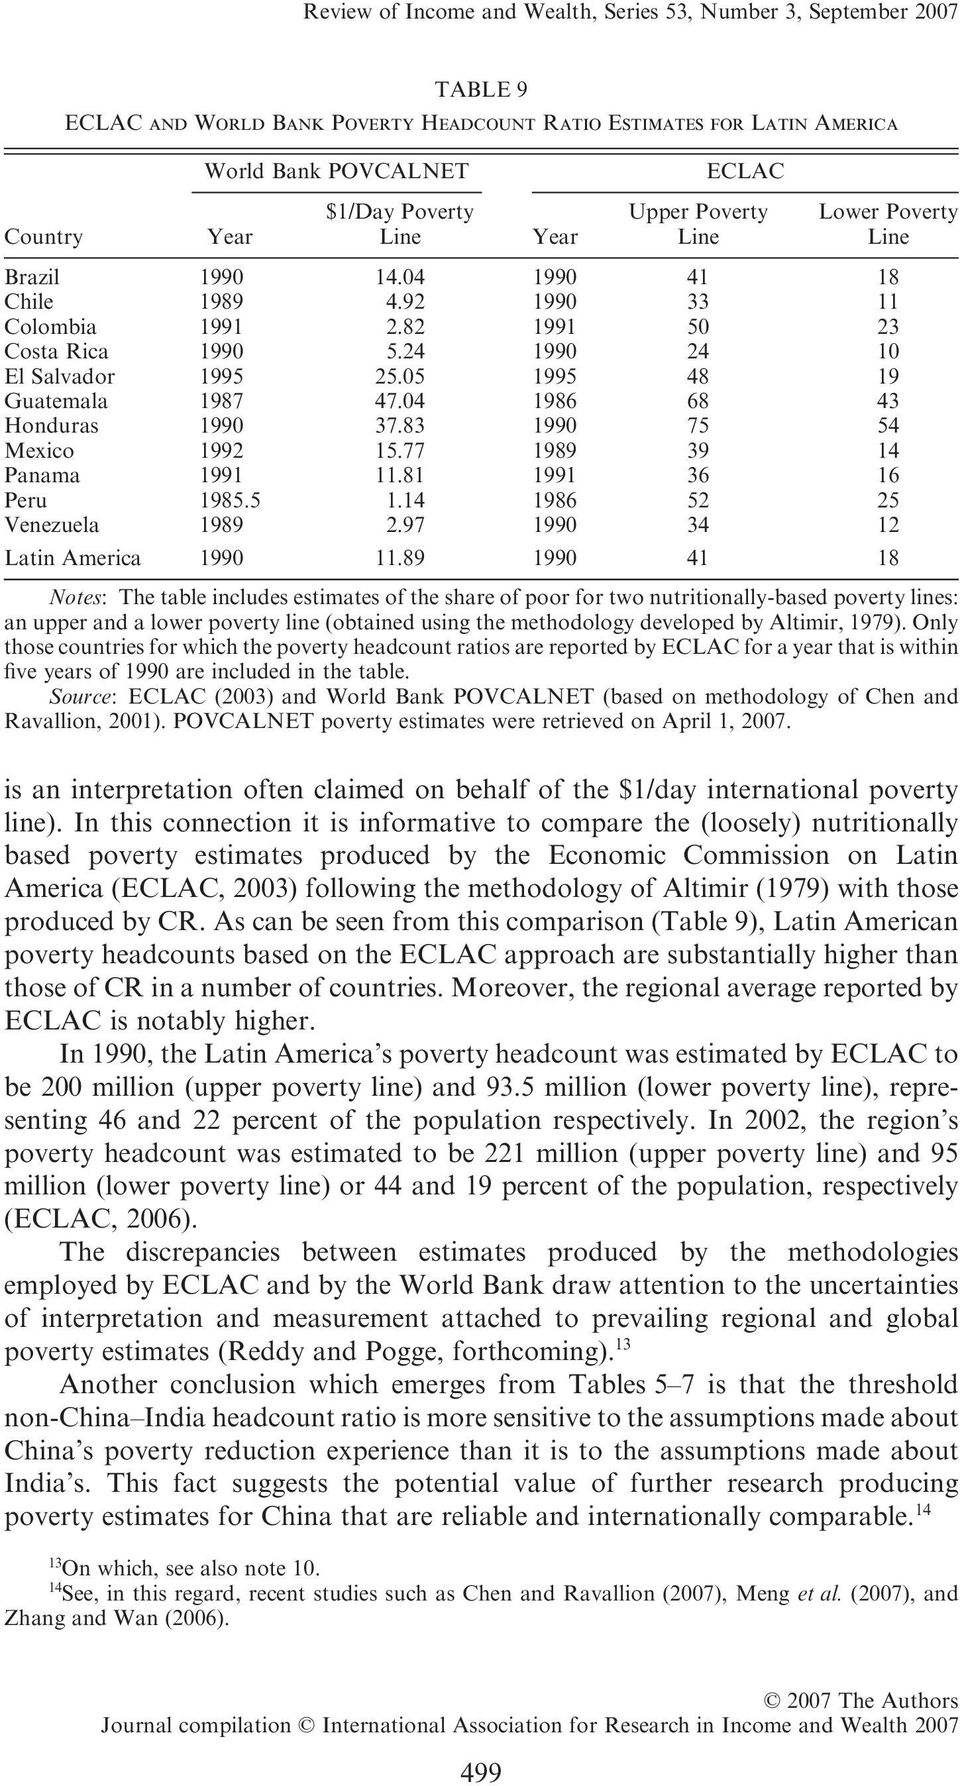 In this connection it is informative to compare the (loosely) nutritionally based poverty estimates produced by the Economic Commission on Latin America (ECLAC, 003) following the methodology of